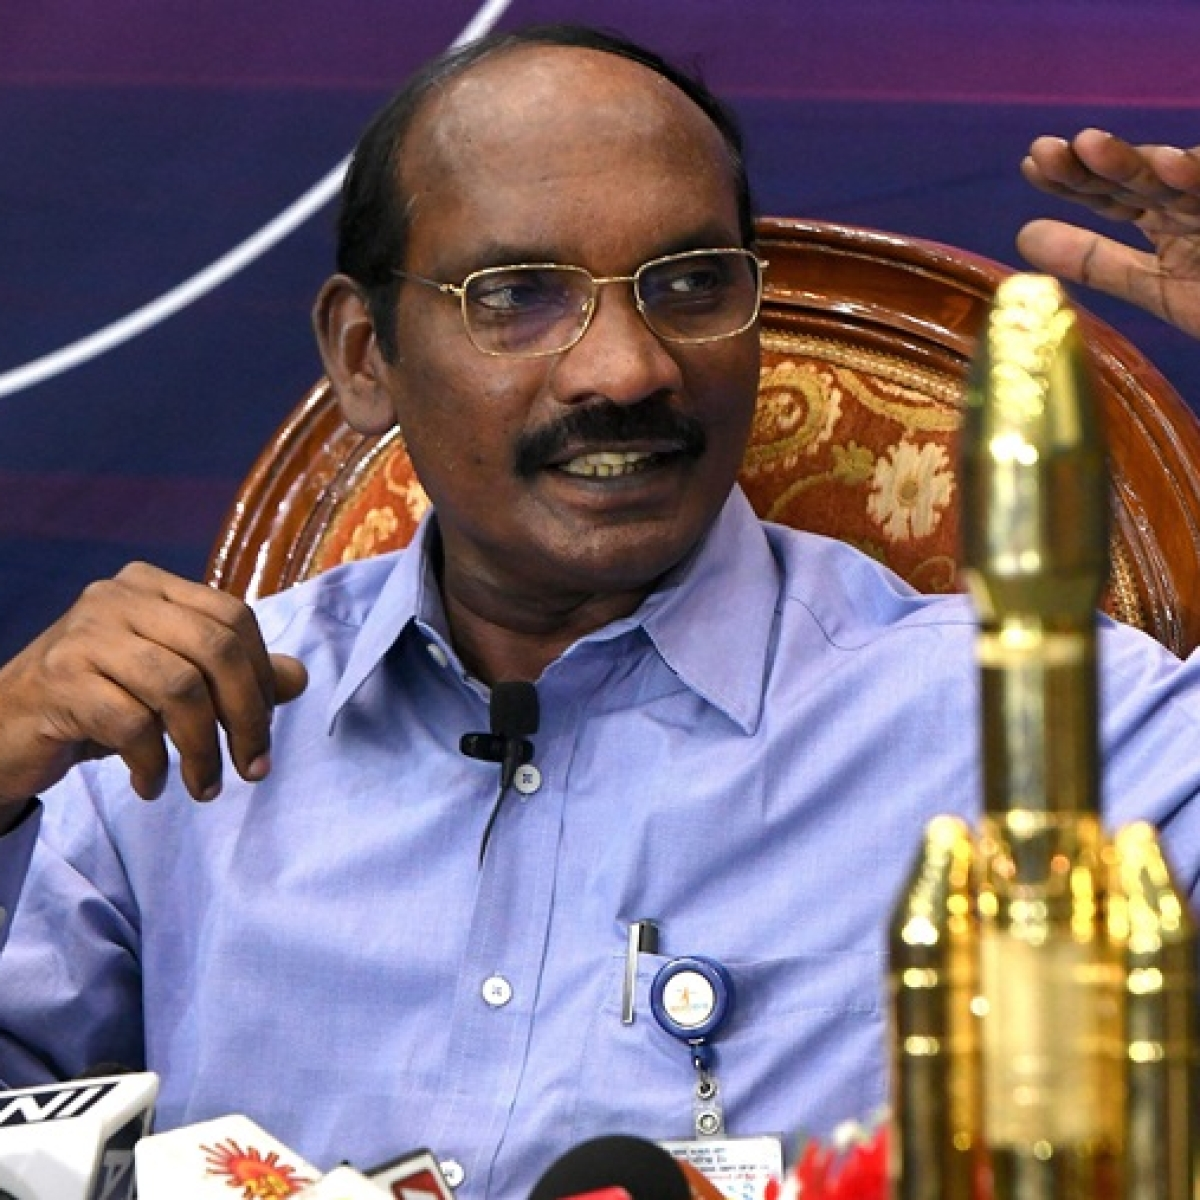 Our heart was almost stopping: ISRO Chief K Sivan on Chandrayaan-2 maneuver